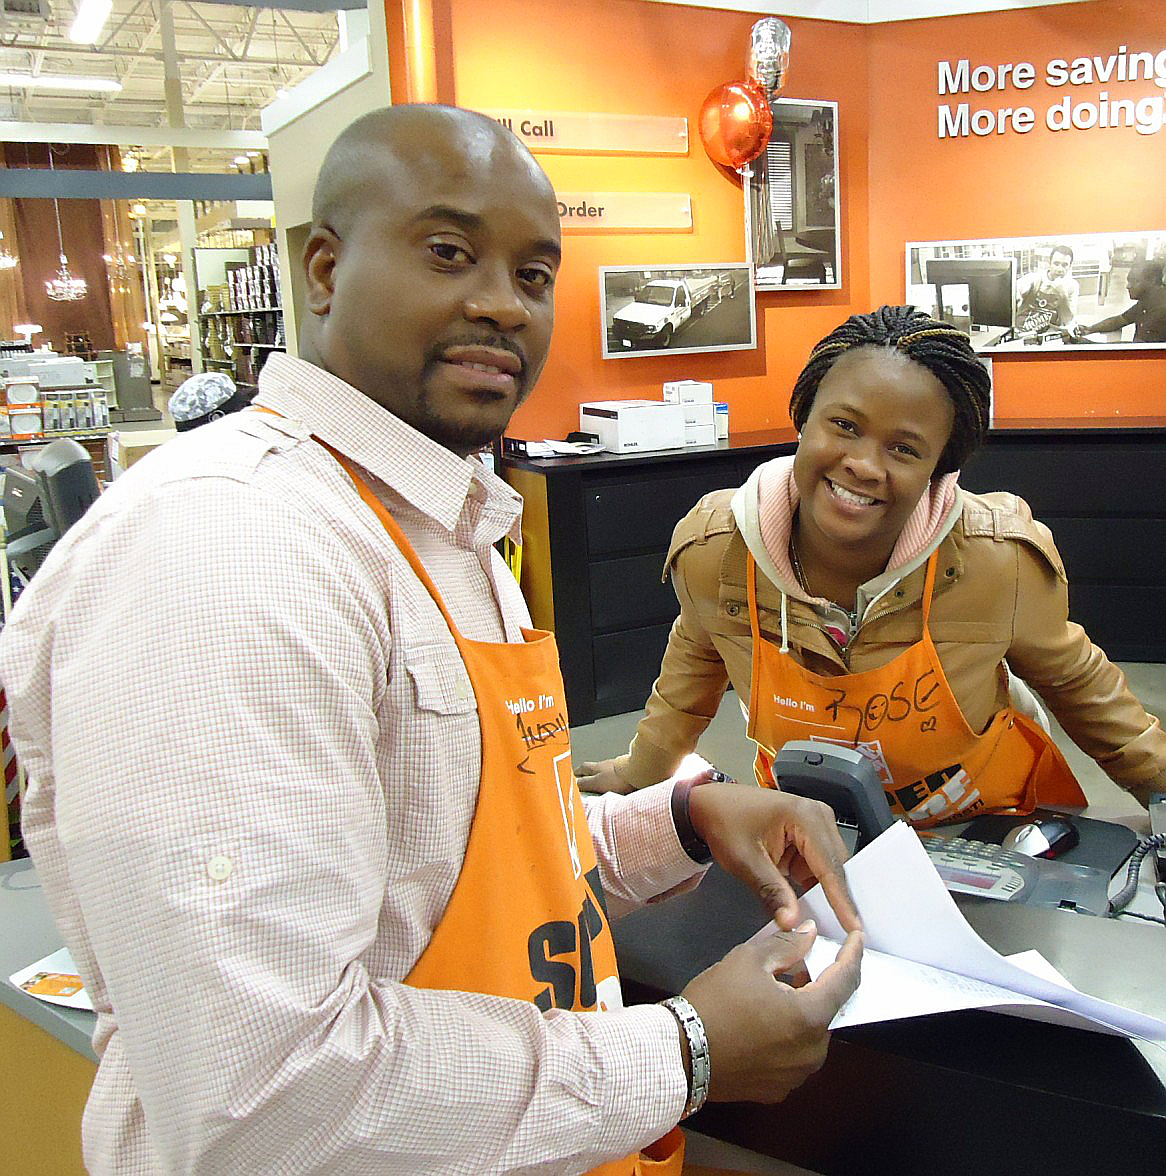 employees at a home depot superstore in union new jersey in january 2013